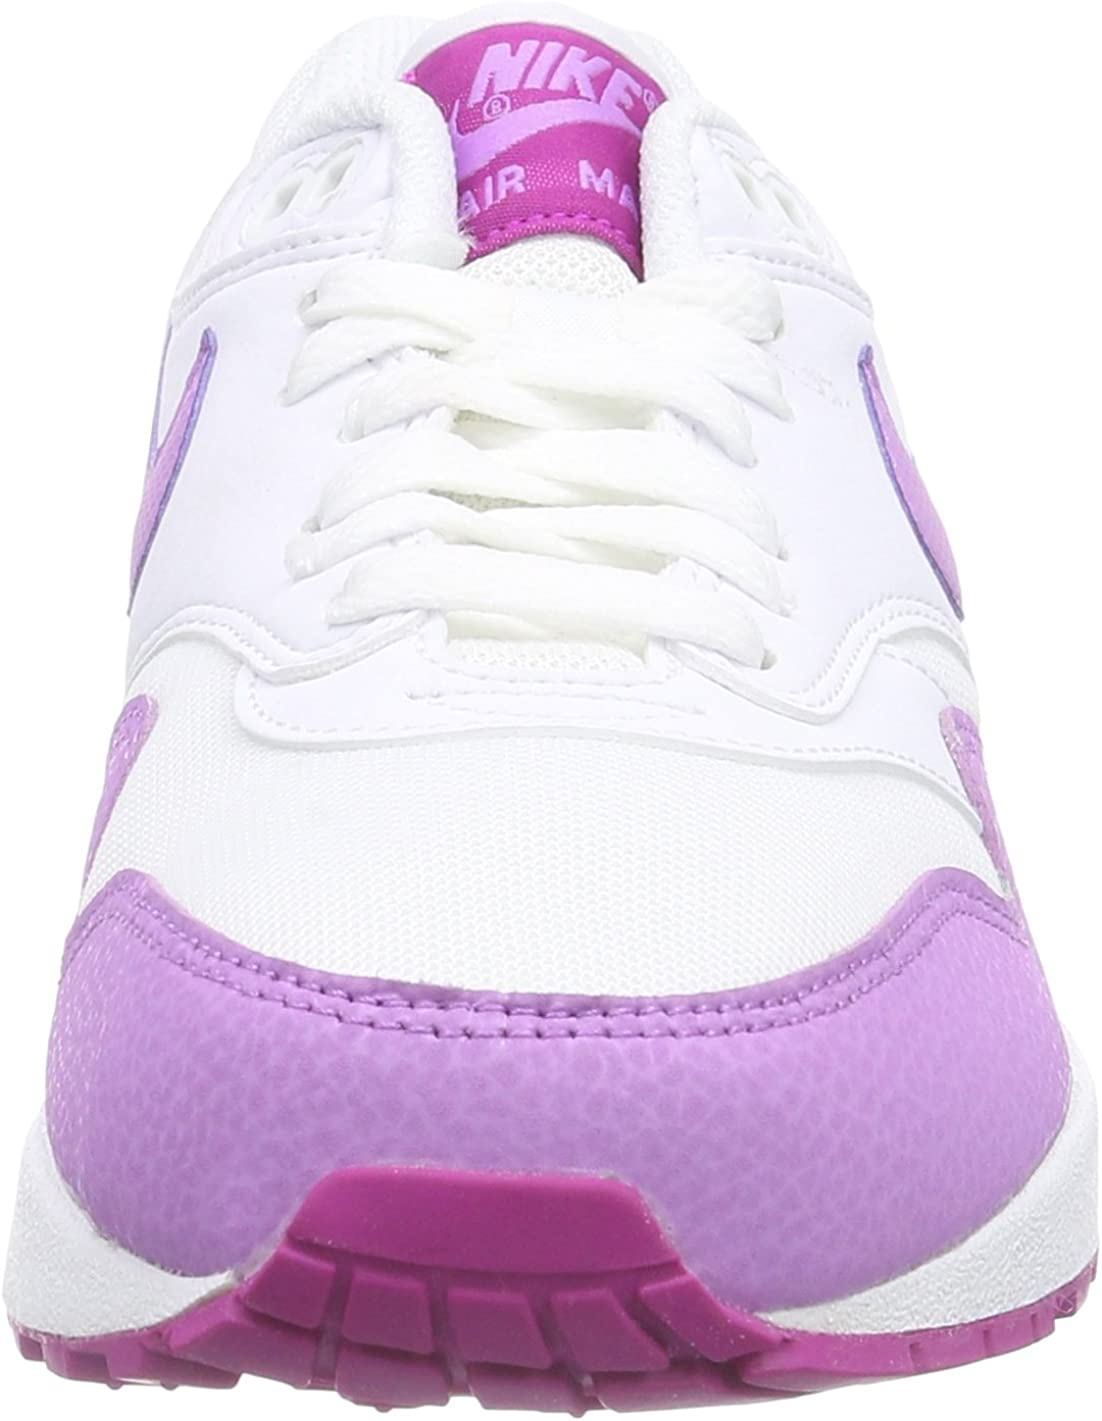 Nike Air Max 1 Essential, Women s Low-Top Sneakers